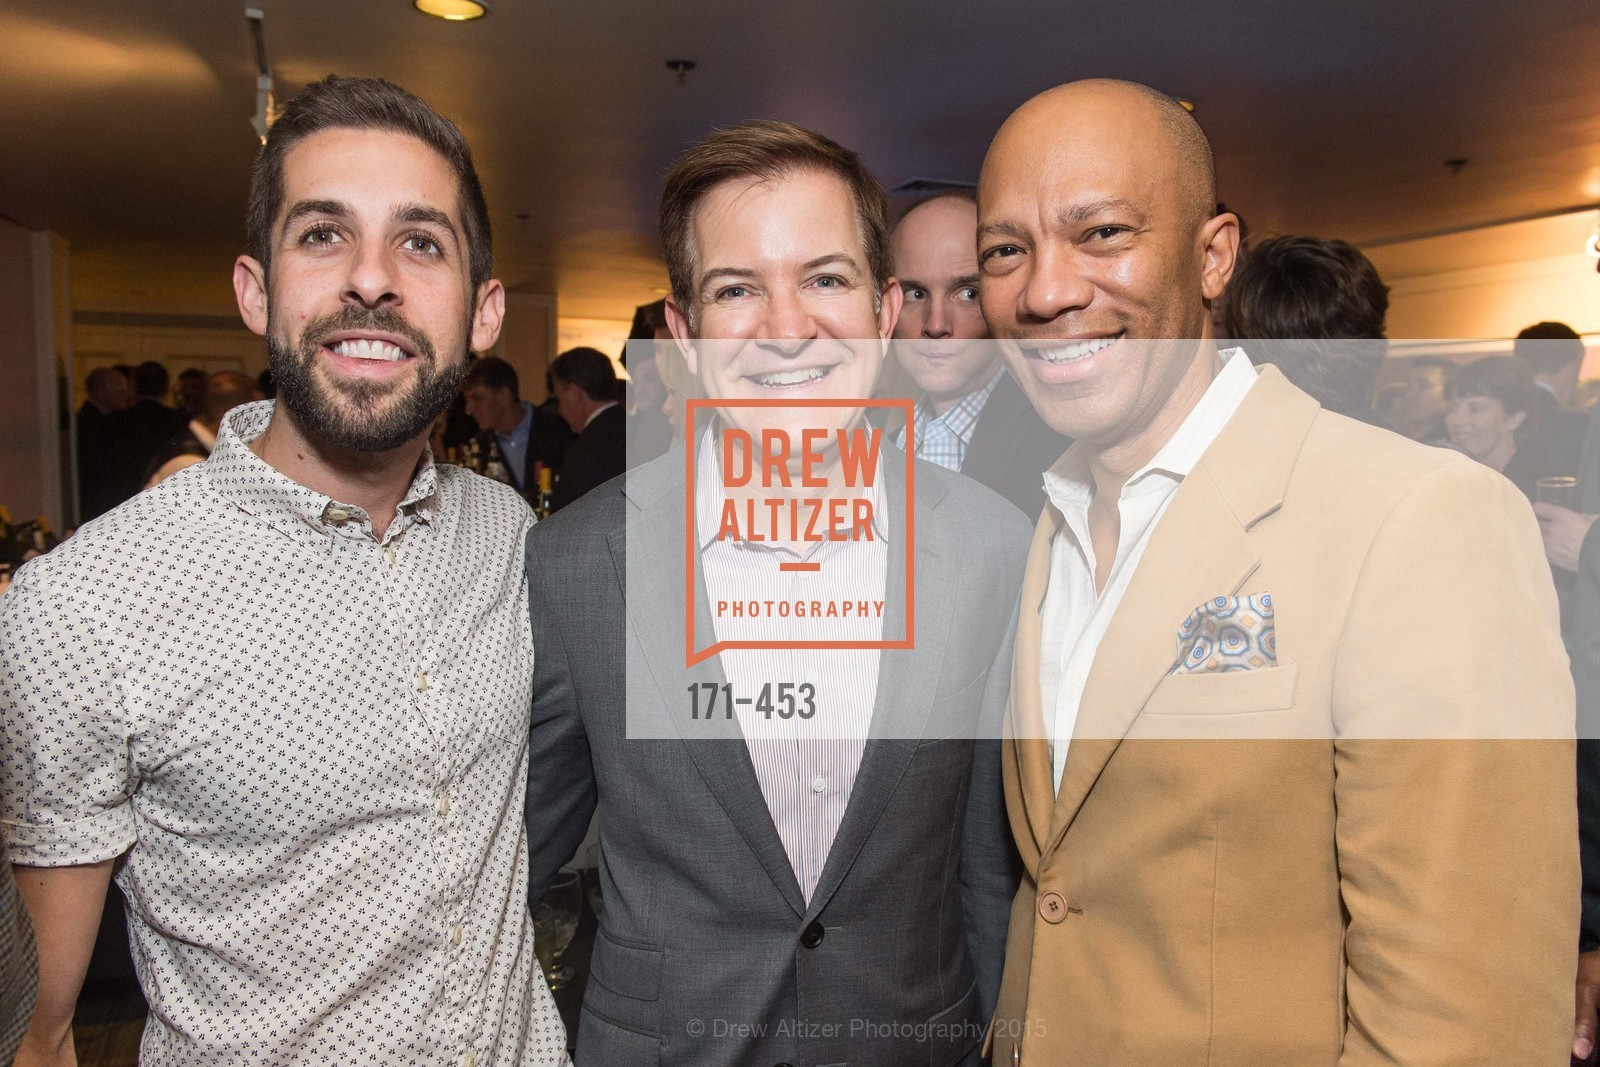 Brad Wedding, Trent Norris, Ken McNeely, The 2015 StartOut Awards, Kabuki Hotel. 2525 Van Ness St, November 5th, 2015,Drew Altizer, Drew Altizer Photography, full-service agency, private events, San Francisco photographer, photographer california